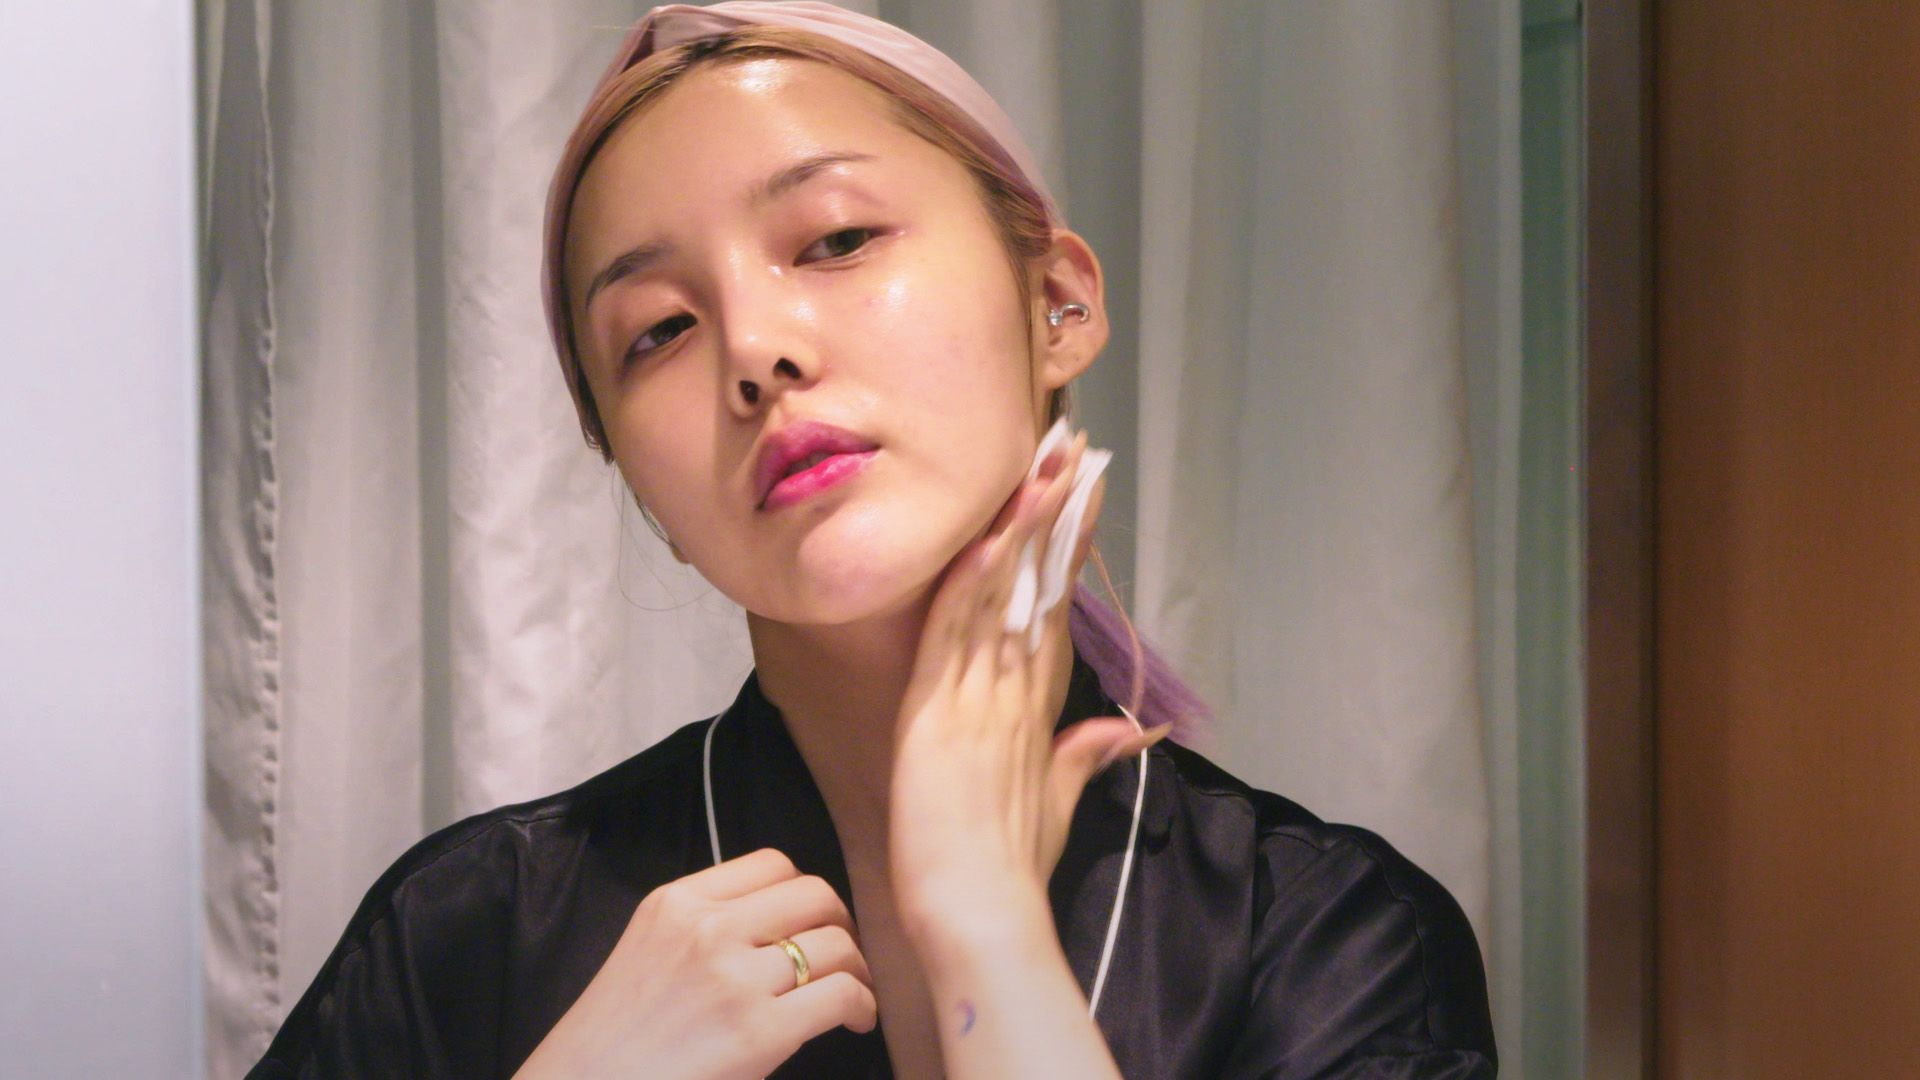 Pony, Korean Makeup Artist, Has The Most Insane Nighttime Skincare Routine